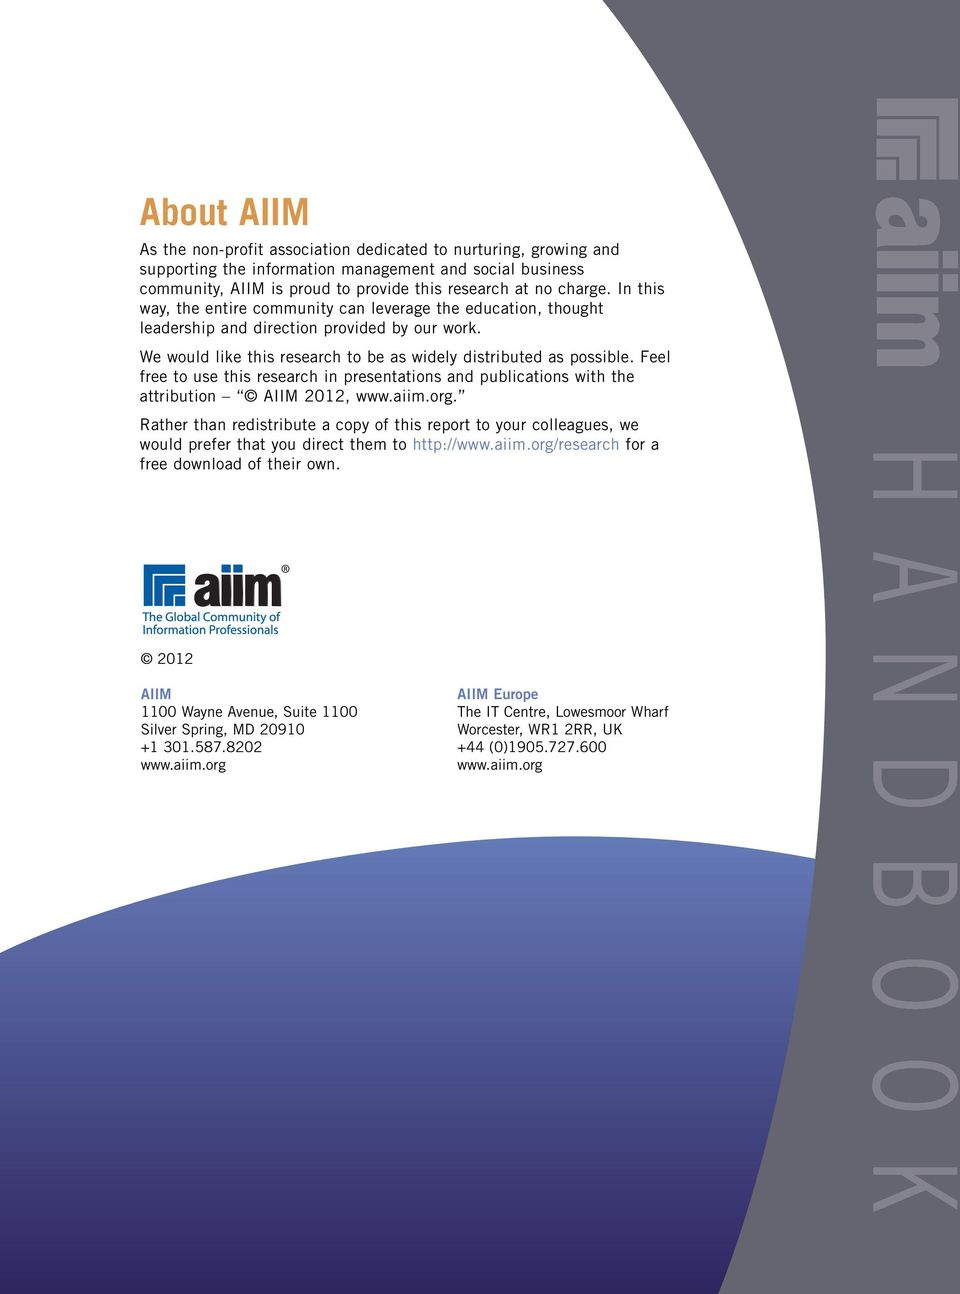 Feel free to use this research in presentations and publications with the attribution AIIM 2012, www.aiim.org.